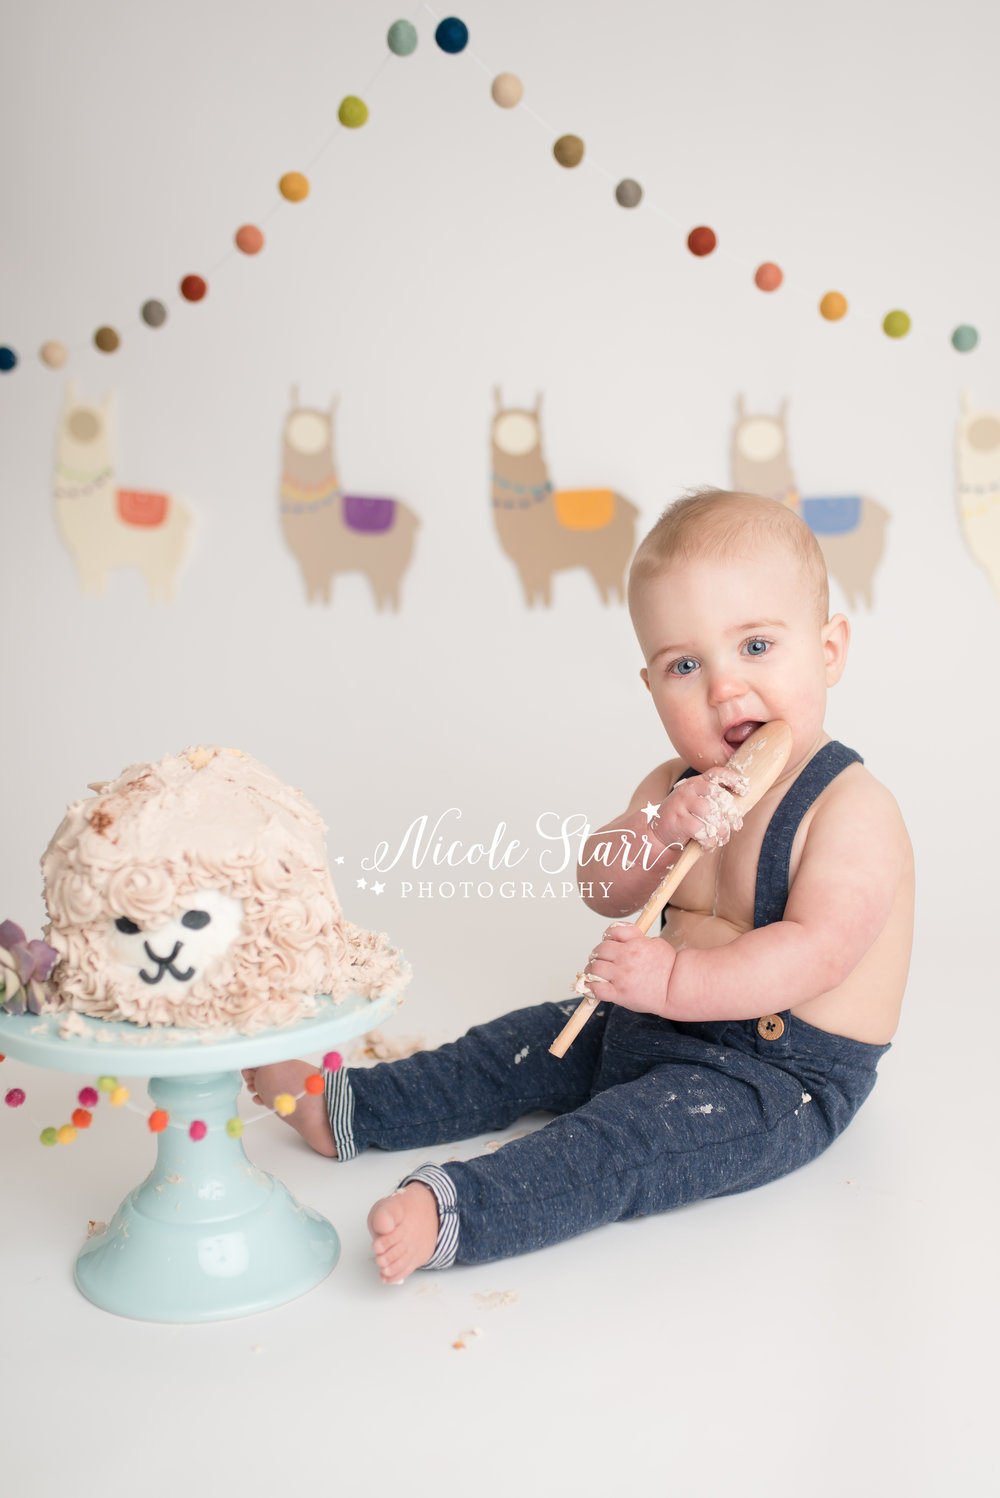 llama cake smash, nicole starr photography, saratoga springs cake smash photographer-5.jpg